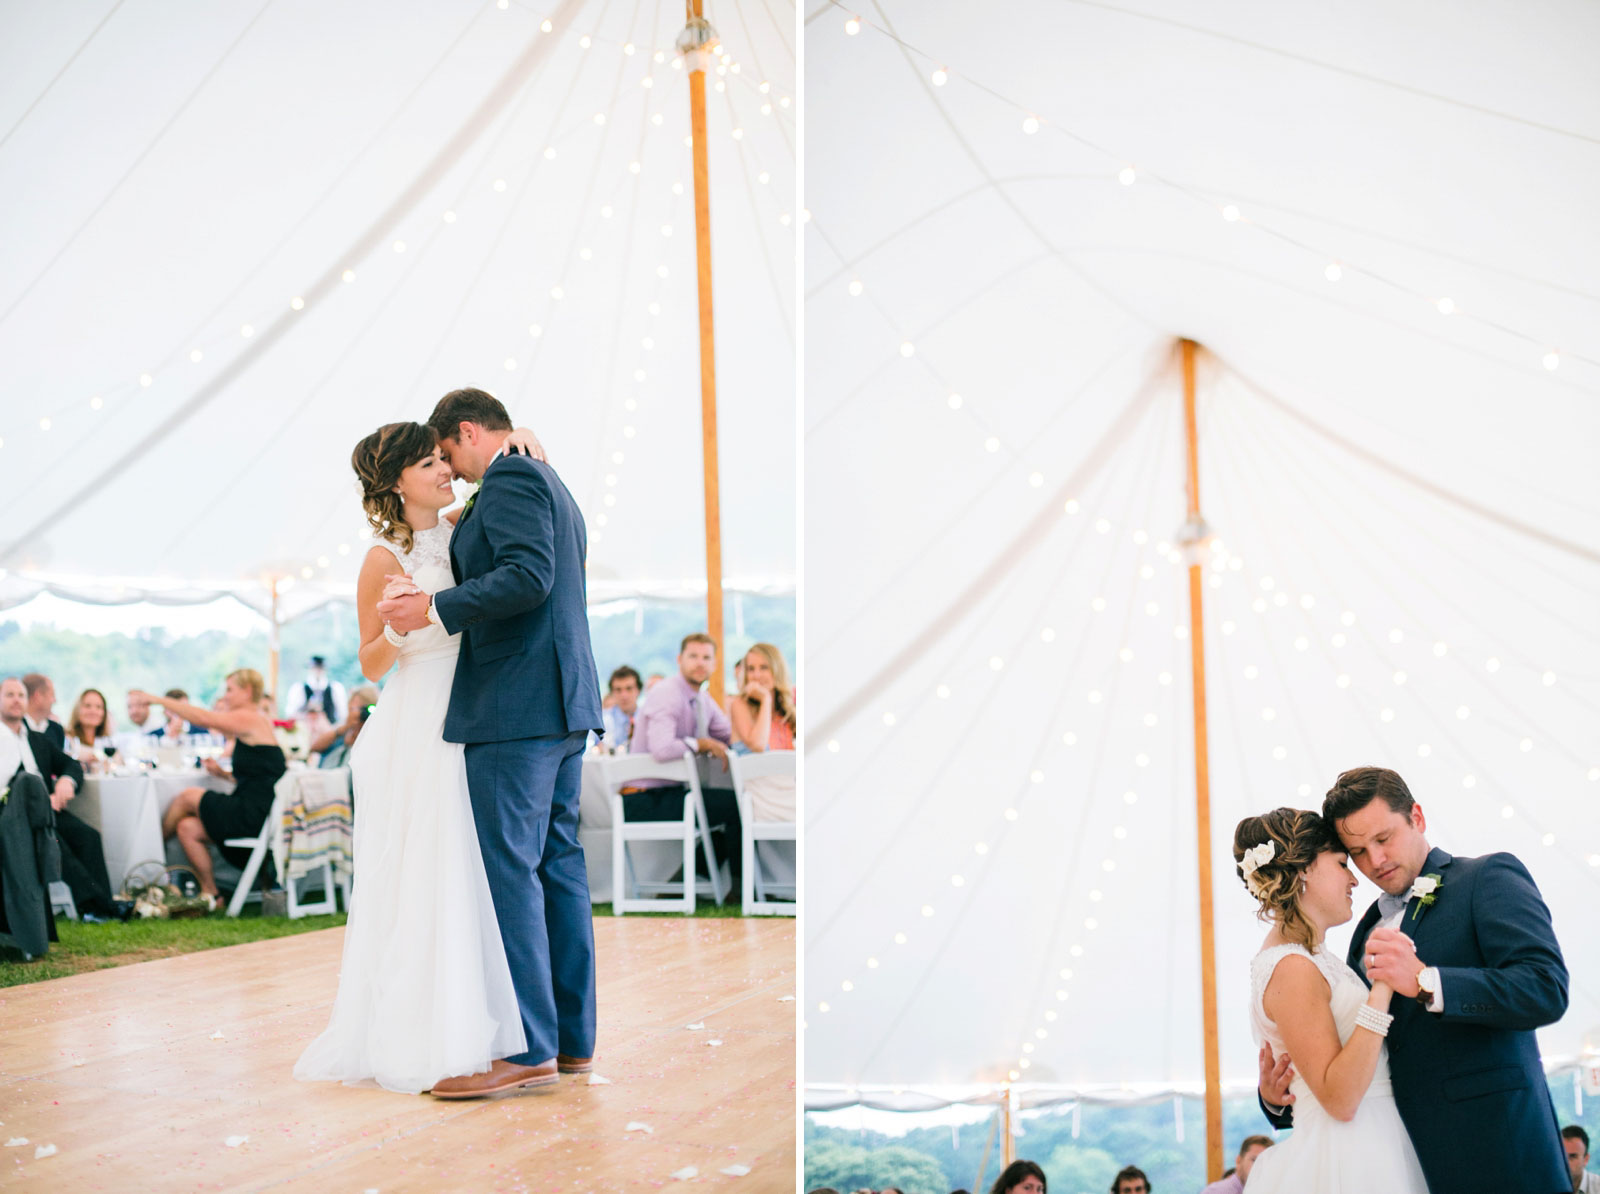 Bride and groom share their first dance under tent with string lights and soft natural light.